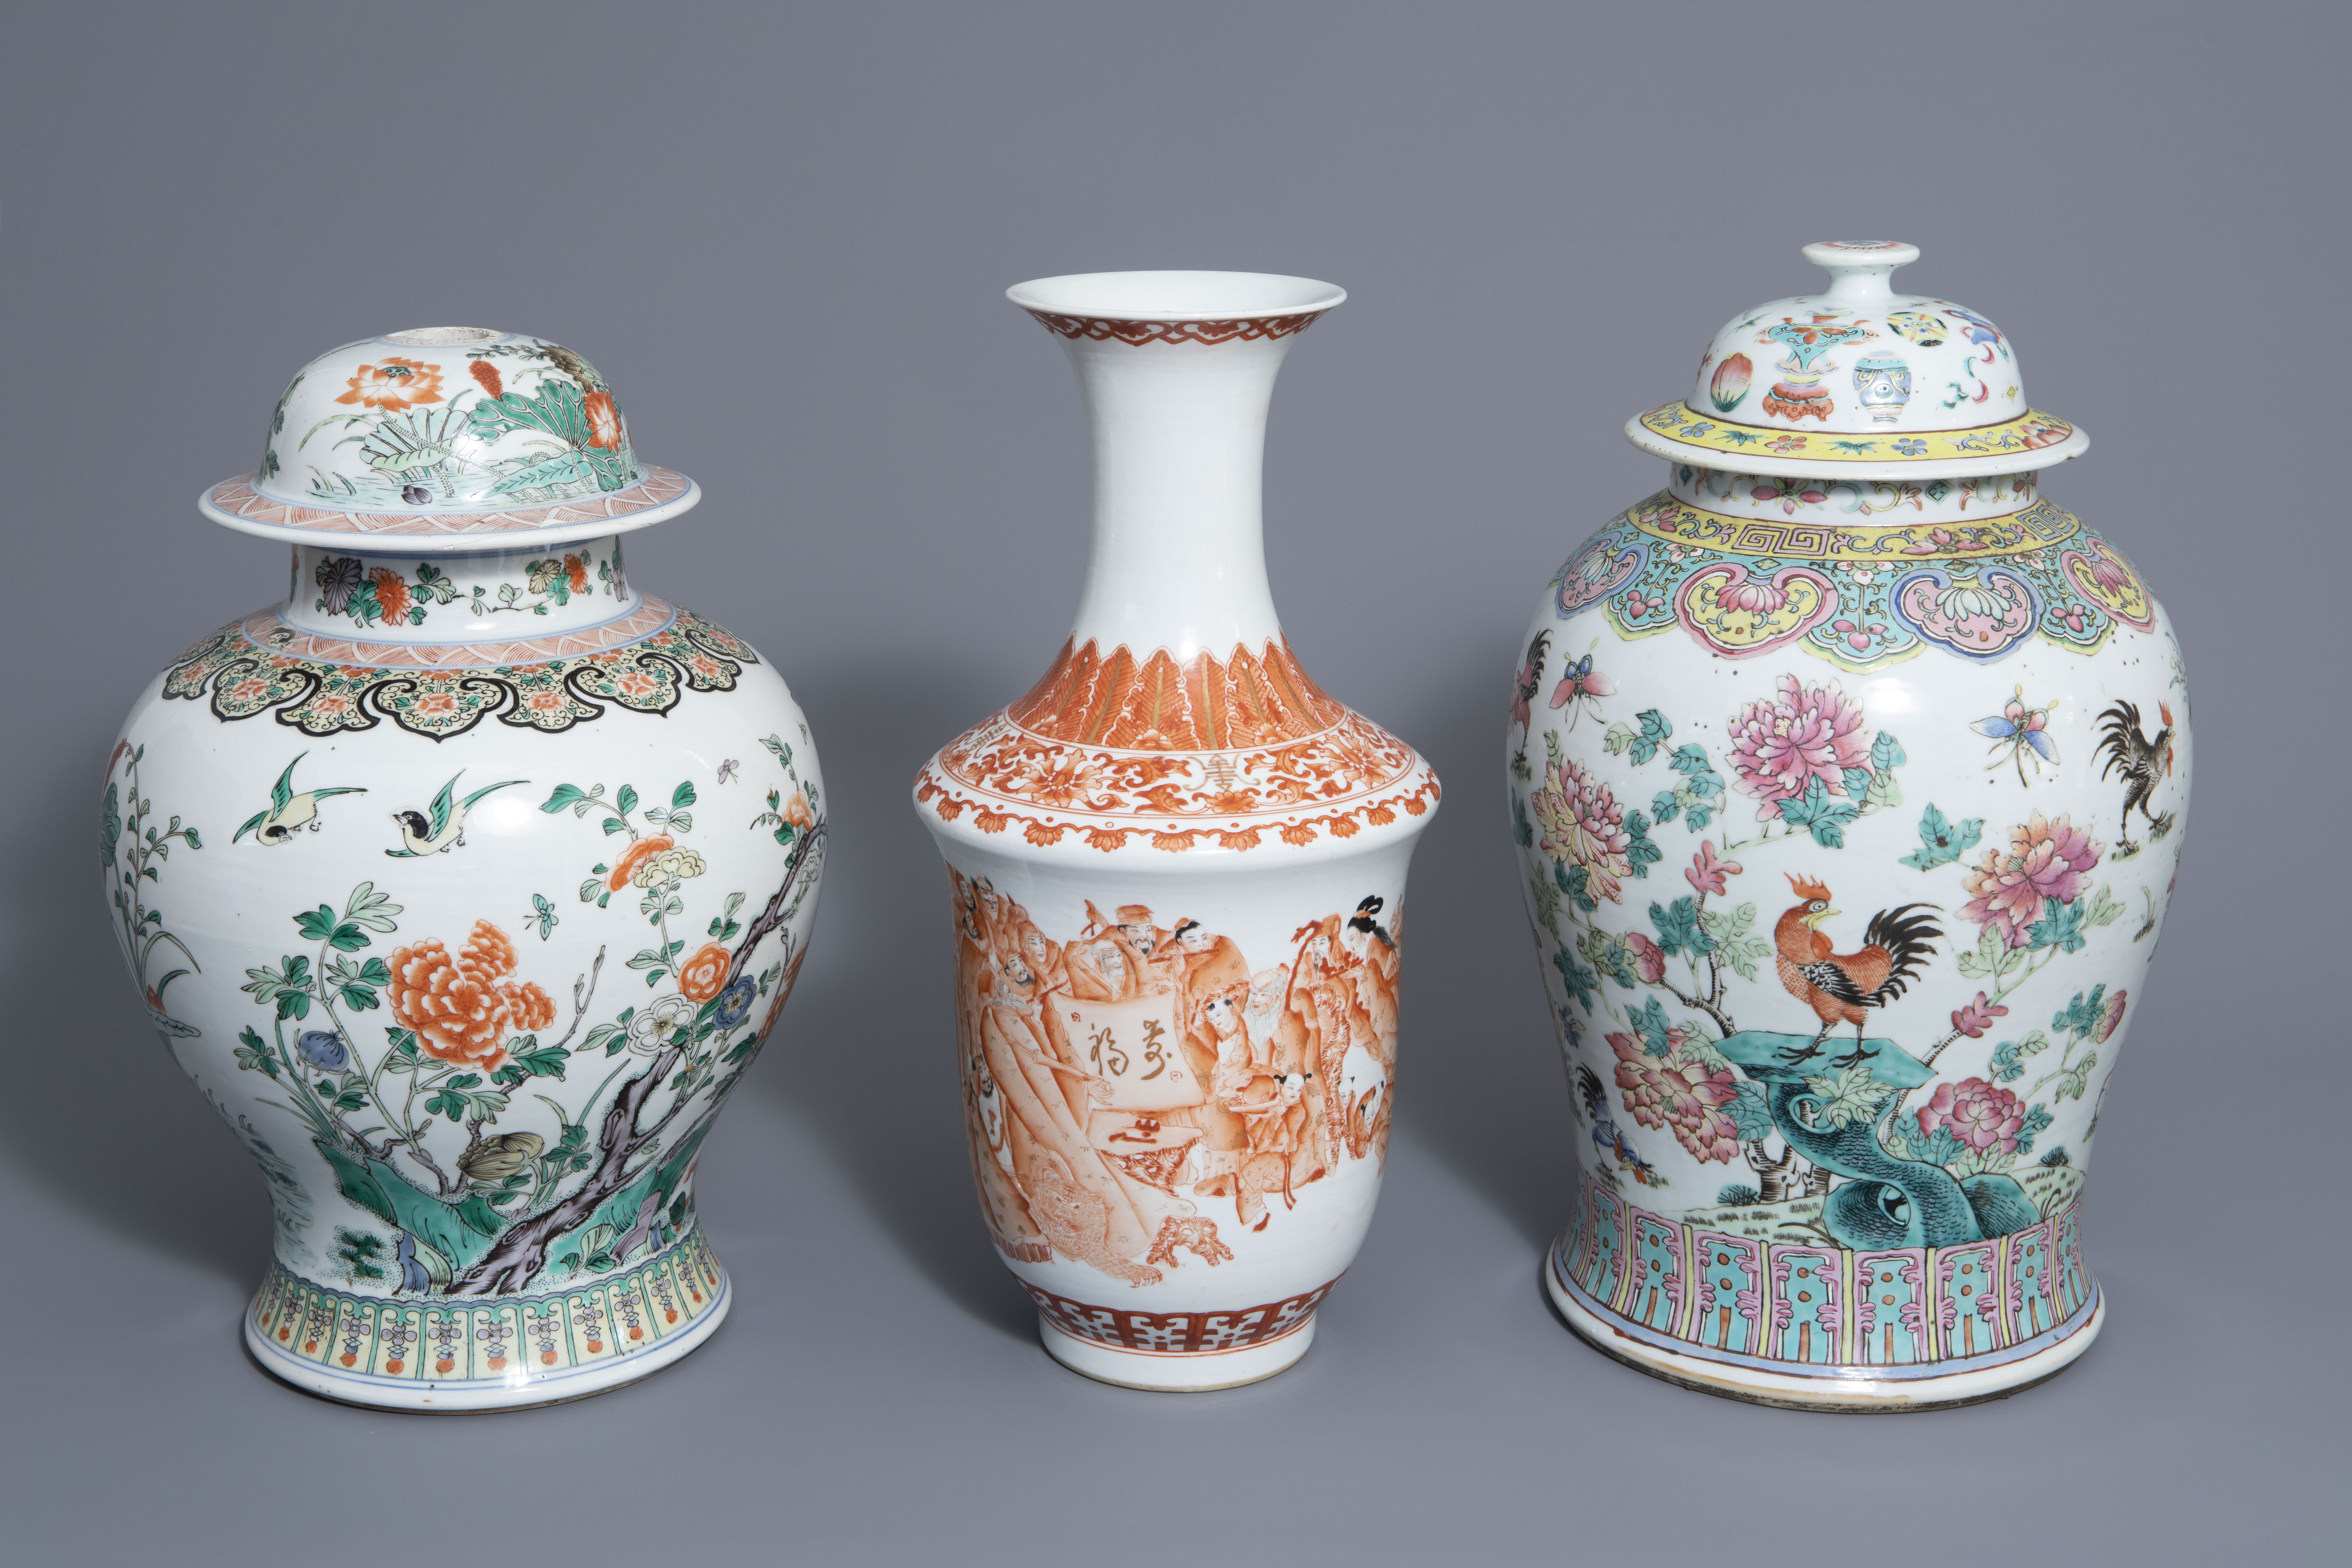 Three Chinese famille rose, verte and iron red vases with different designs, 19th/20th C.